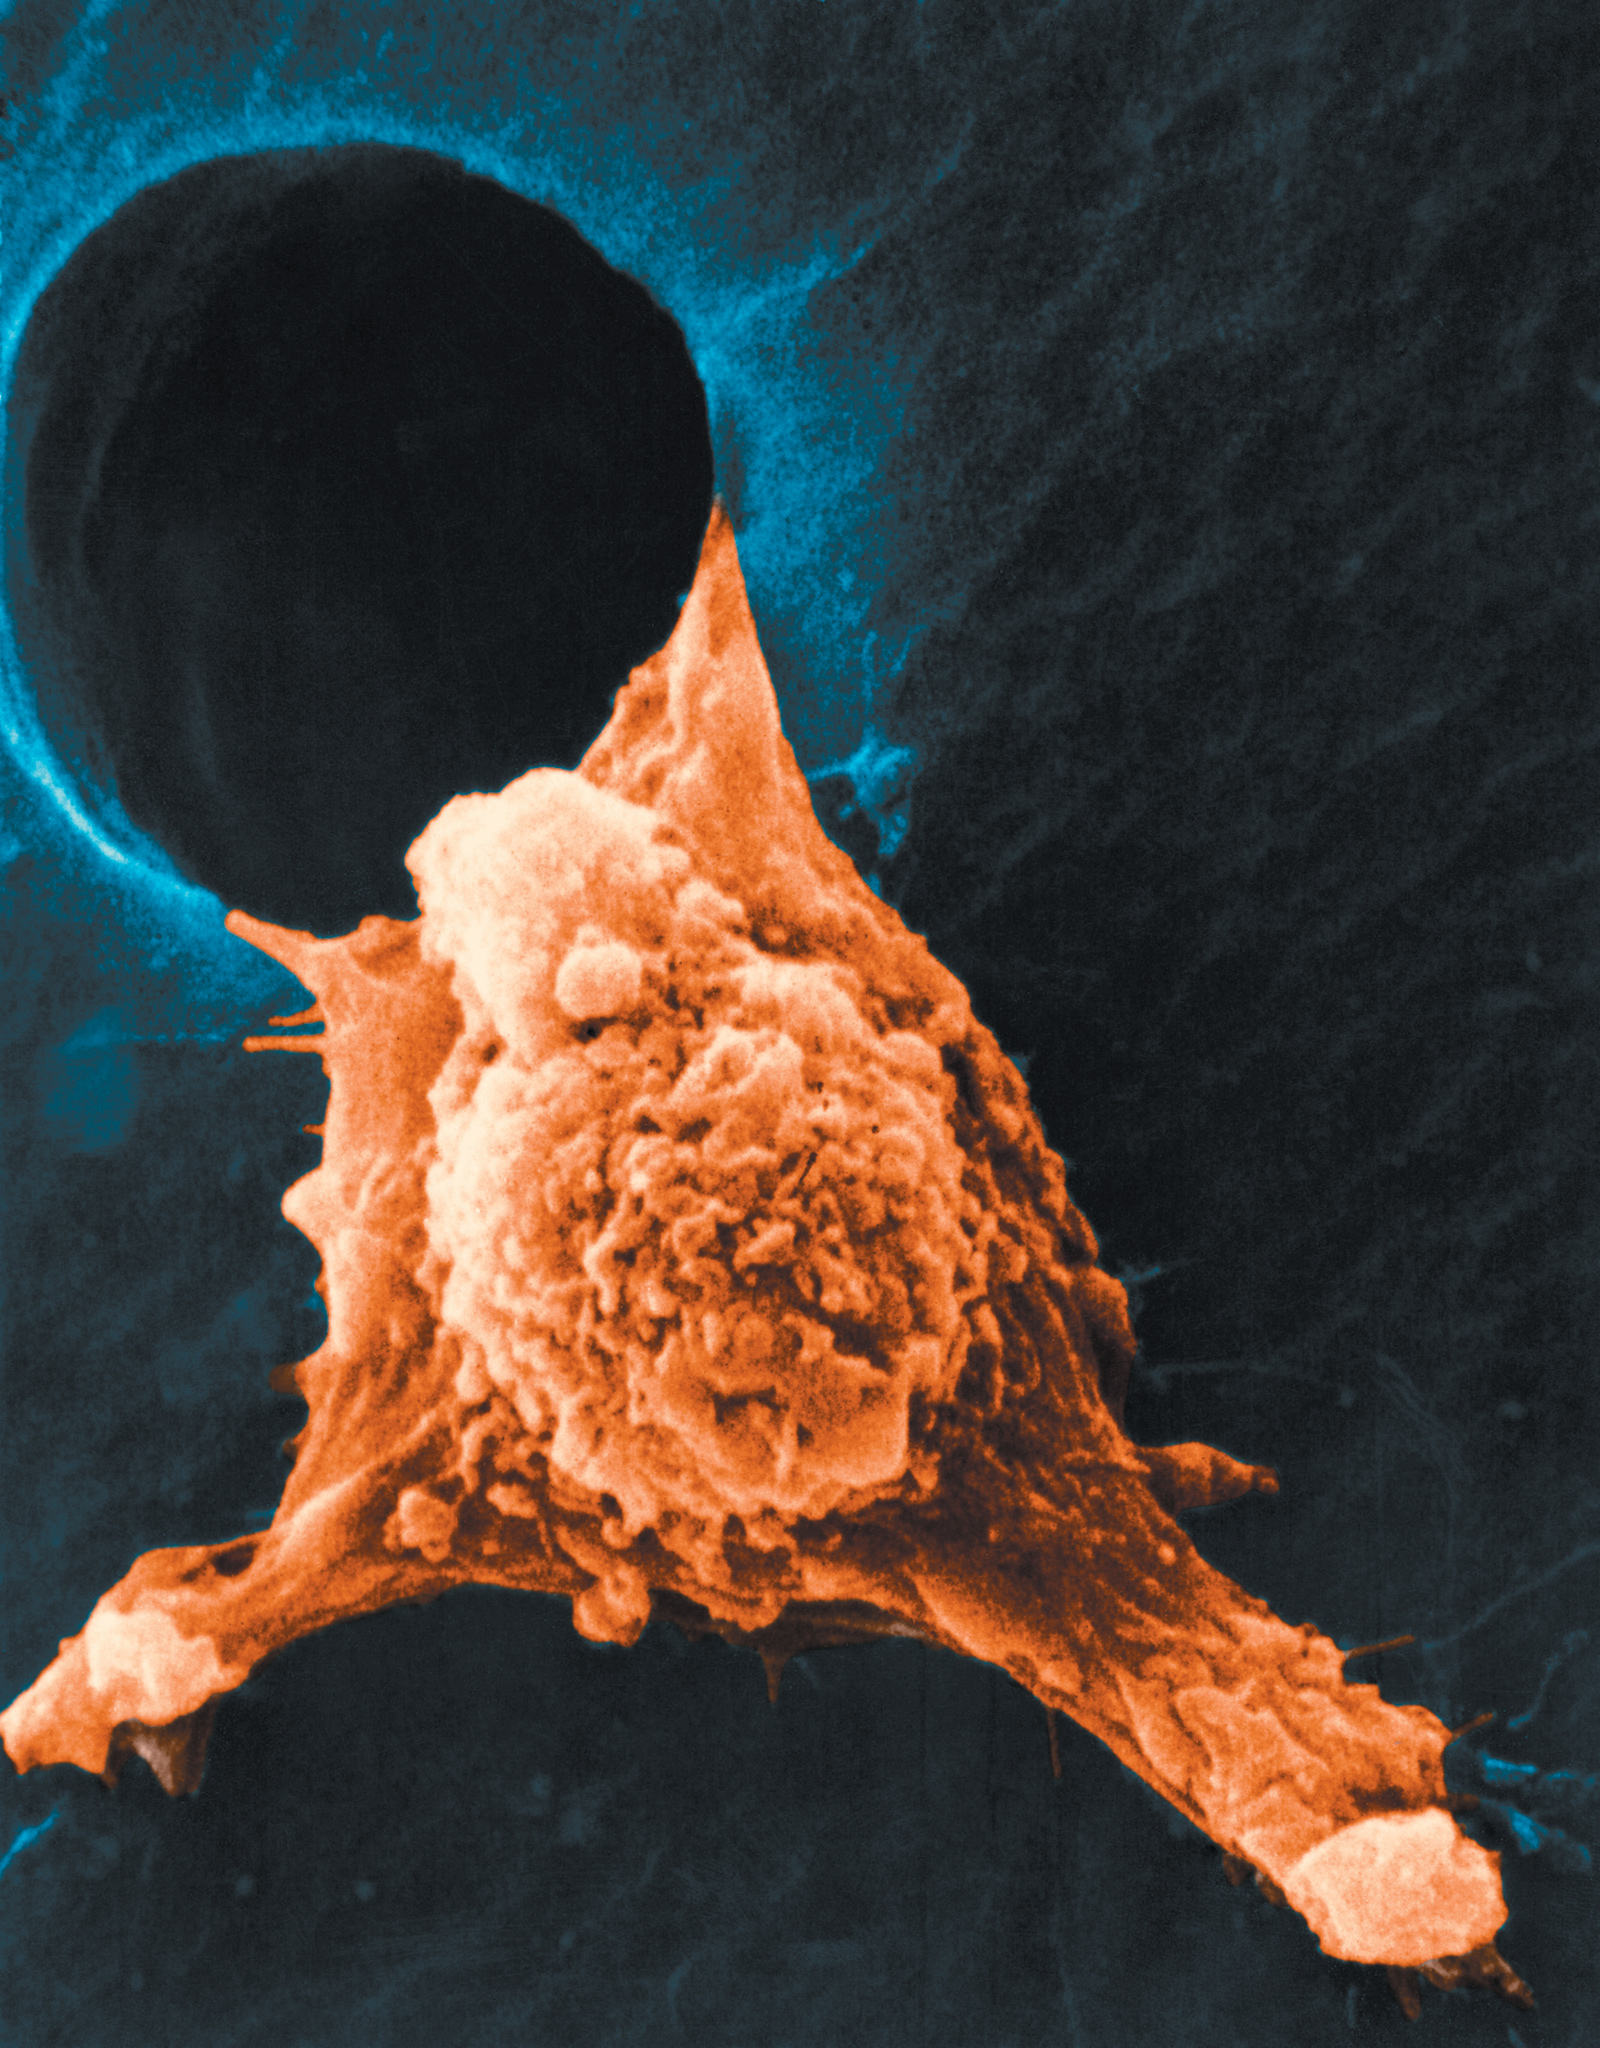 A color-enhanced scanning electron micrograph showing the spread of cancer cells